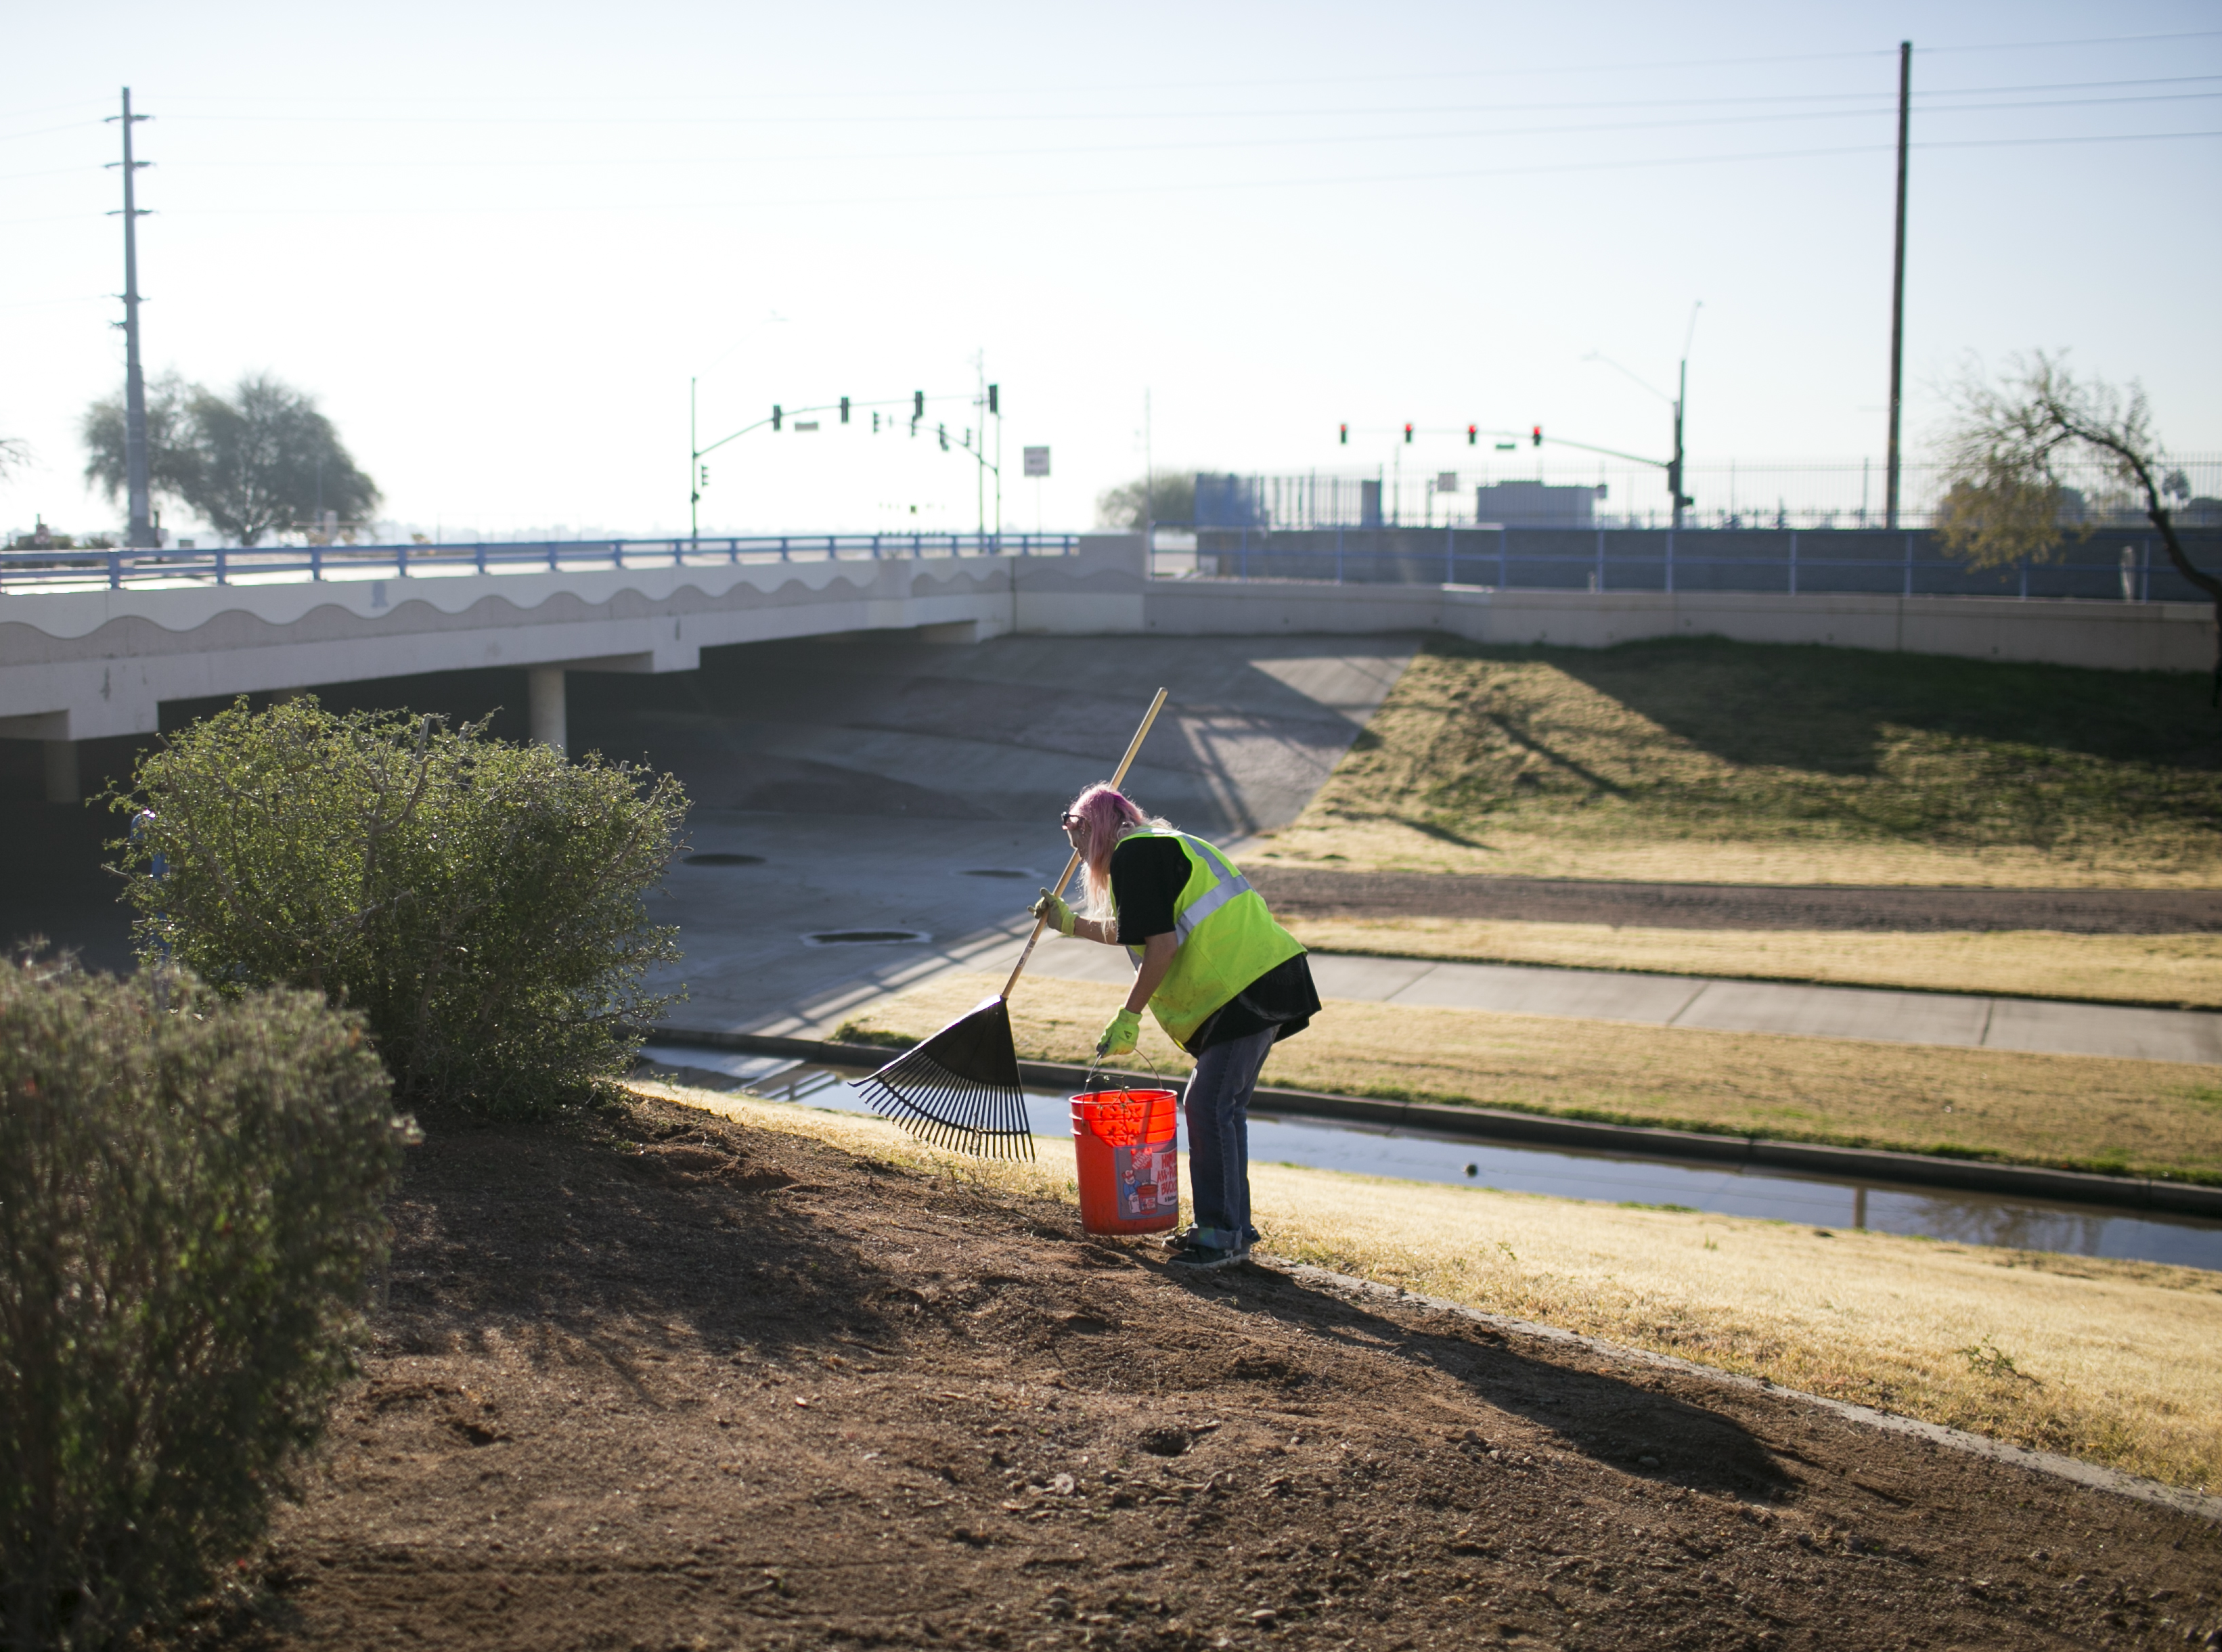 Sherry Millegan helps clean Grand Canal Linear Park as part of the Phoenix Rescue Mission's Glendale Works program on Jan. 7, 2019 in Glendale, Arizona. The Glendale Works program was started by Phoenix Rescue Mission in November of 2018 as an opportunity to get homeless persons working and making an income.